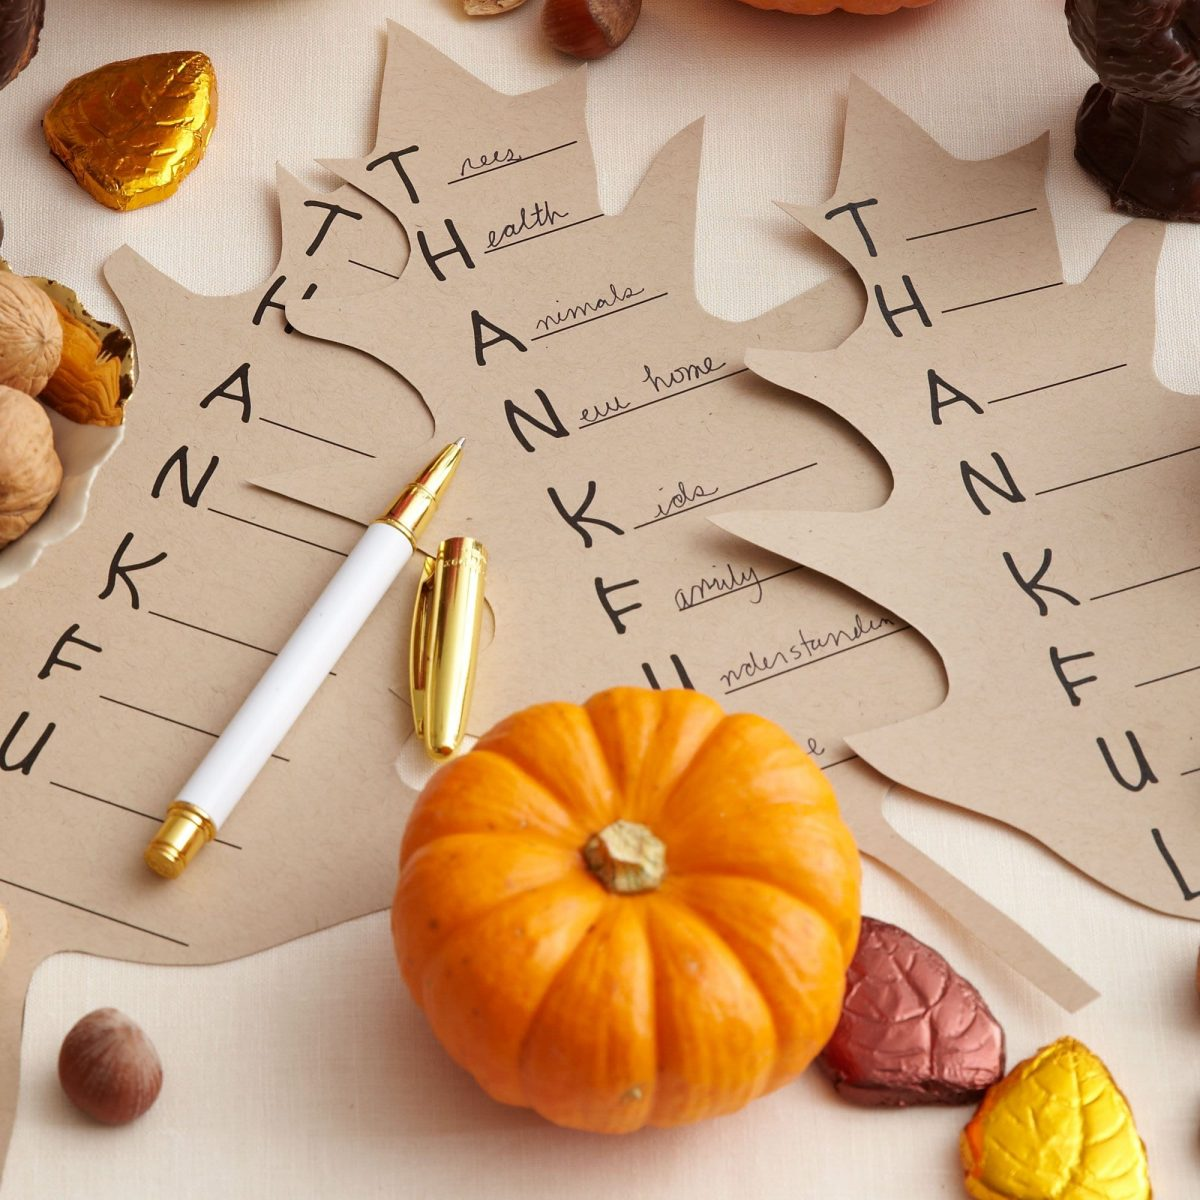 Darcy Miller Designs I am T-H-A-N-K-F-U-L Thanksgiving, Leaf Craft, Paper Craft, Downloadable Template, Thankful, Grateful, Party Game, Toast Prompt, Table Setting